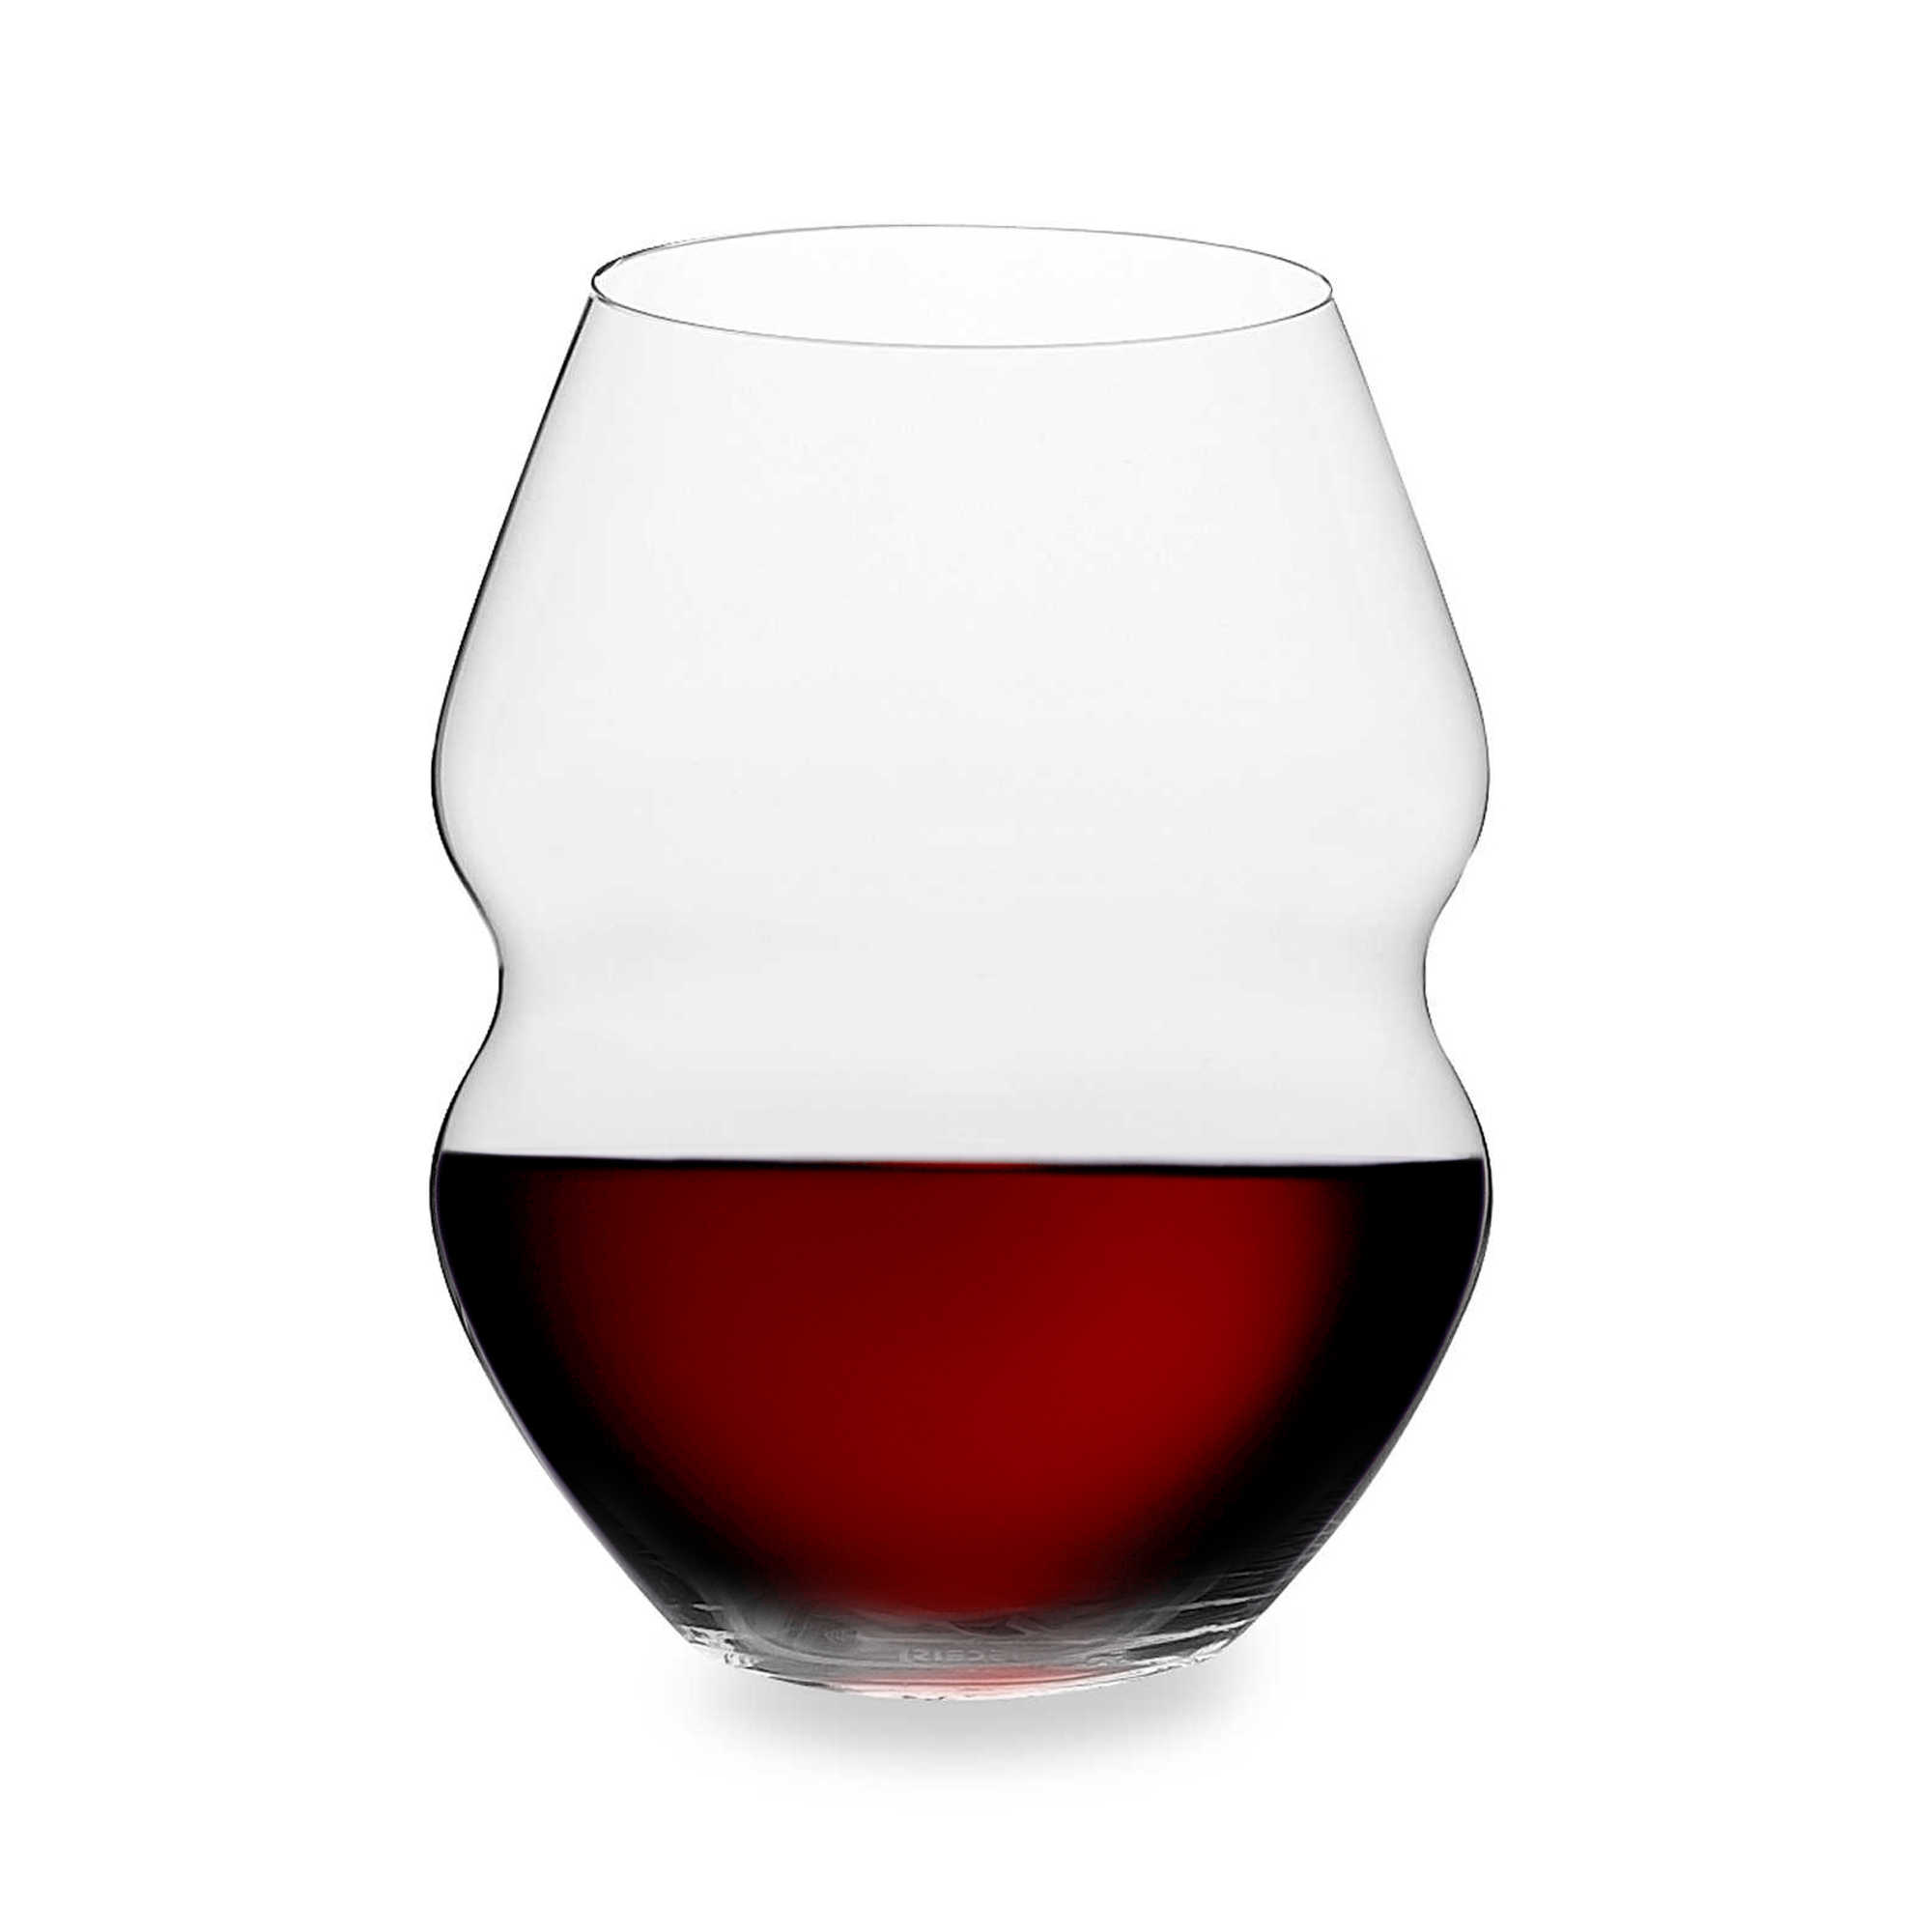 Riedel stemless red wine glasses images - Riedel swirl white wine glasses ...